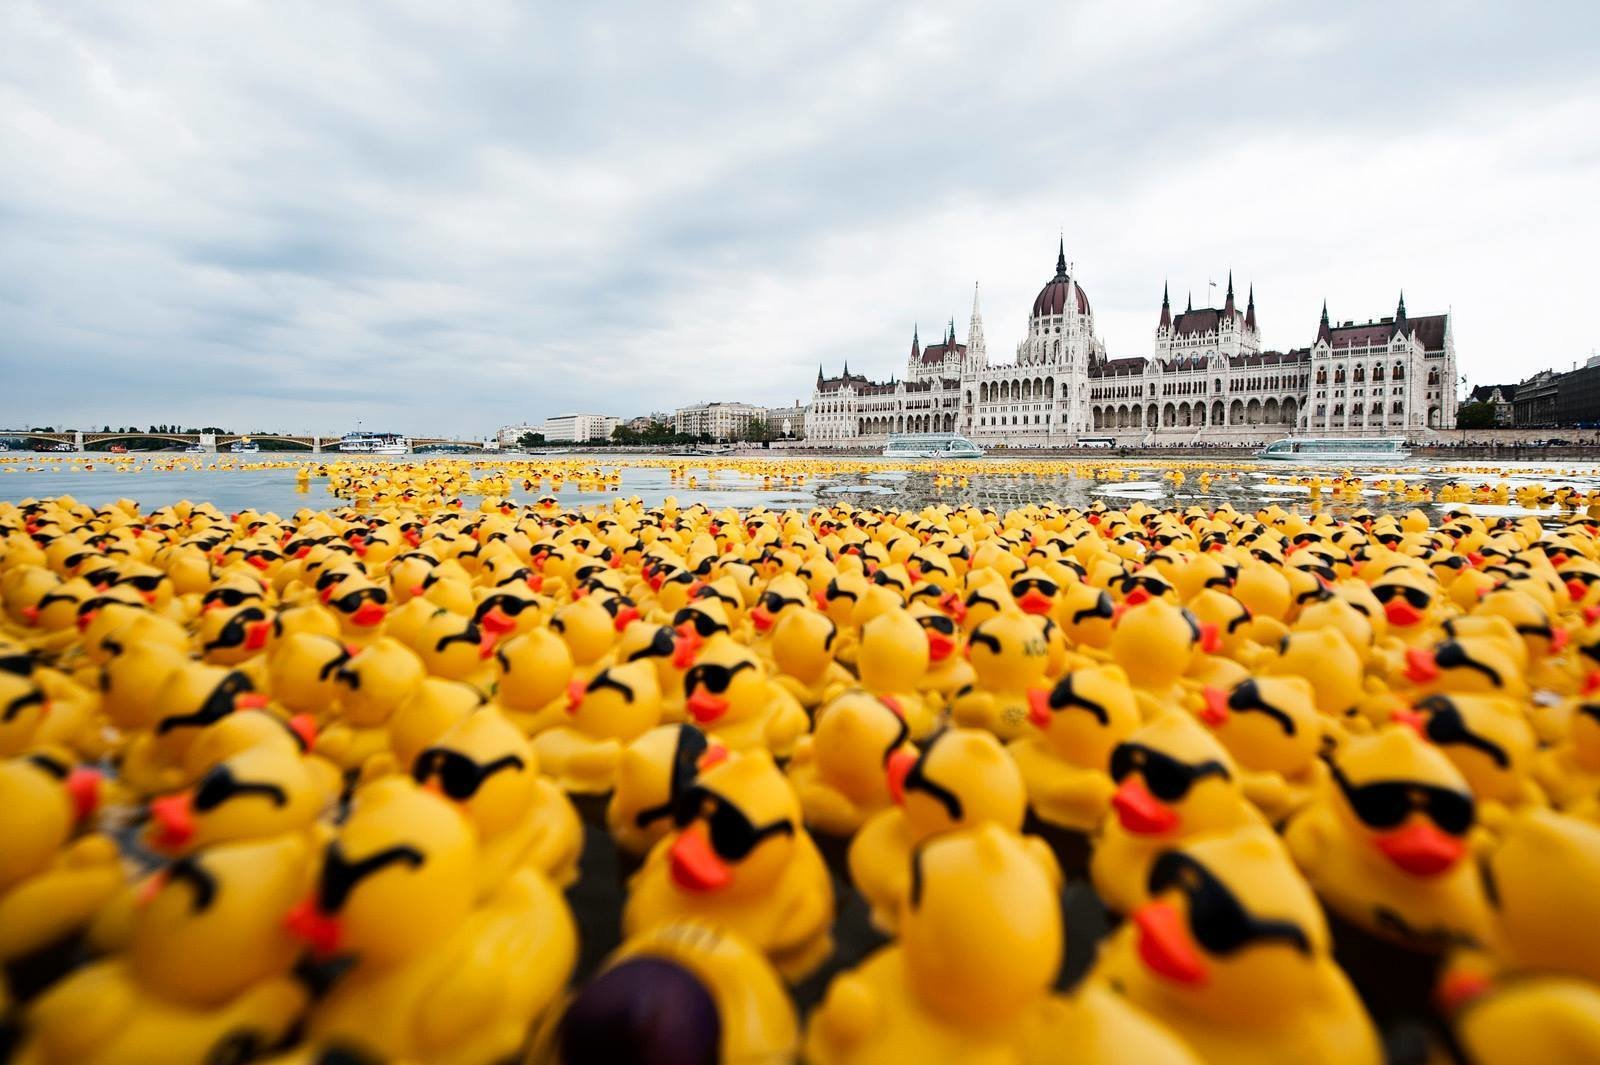 Rubber Ducks Invaded the Danube for Charity